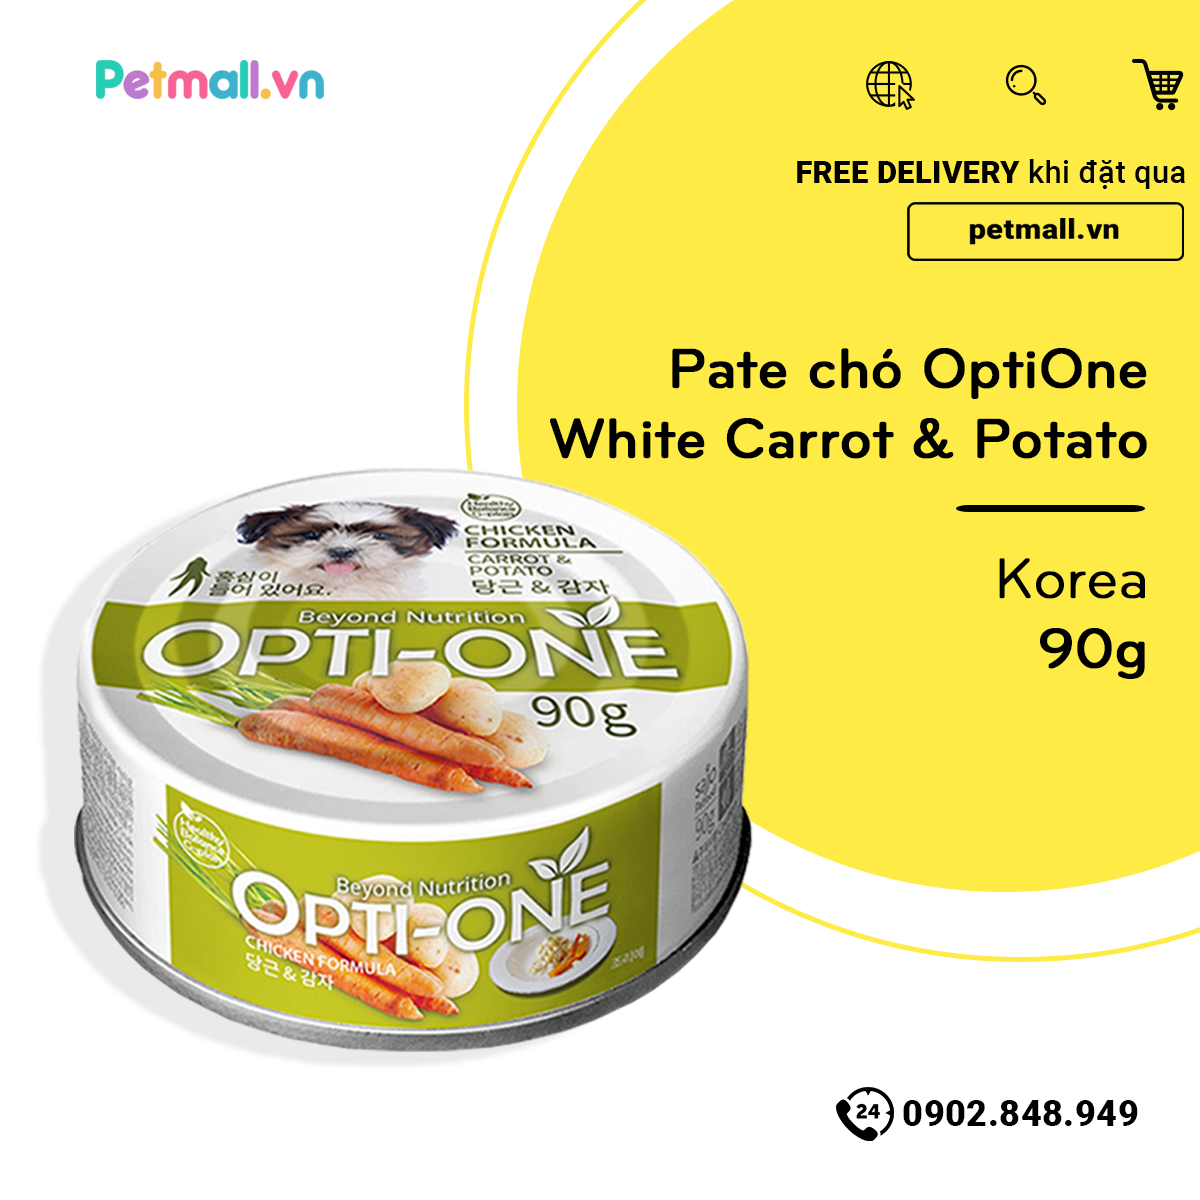 Pate chó OptiOne White Carrot & Potato 90g - Korea